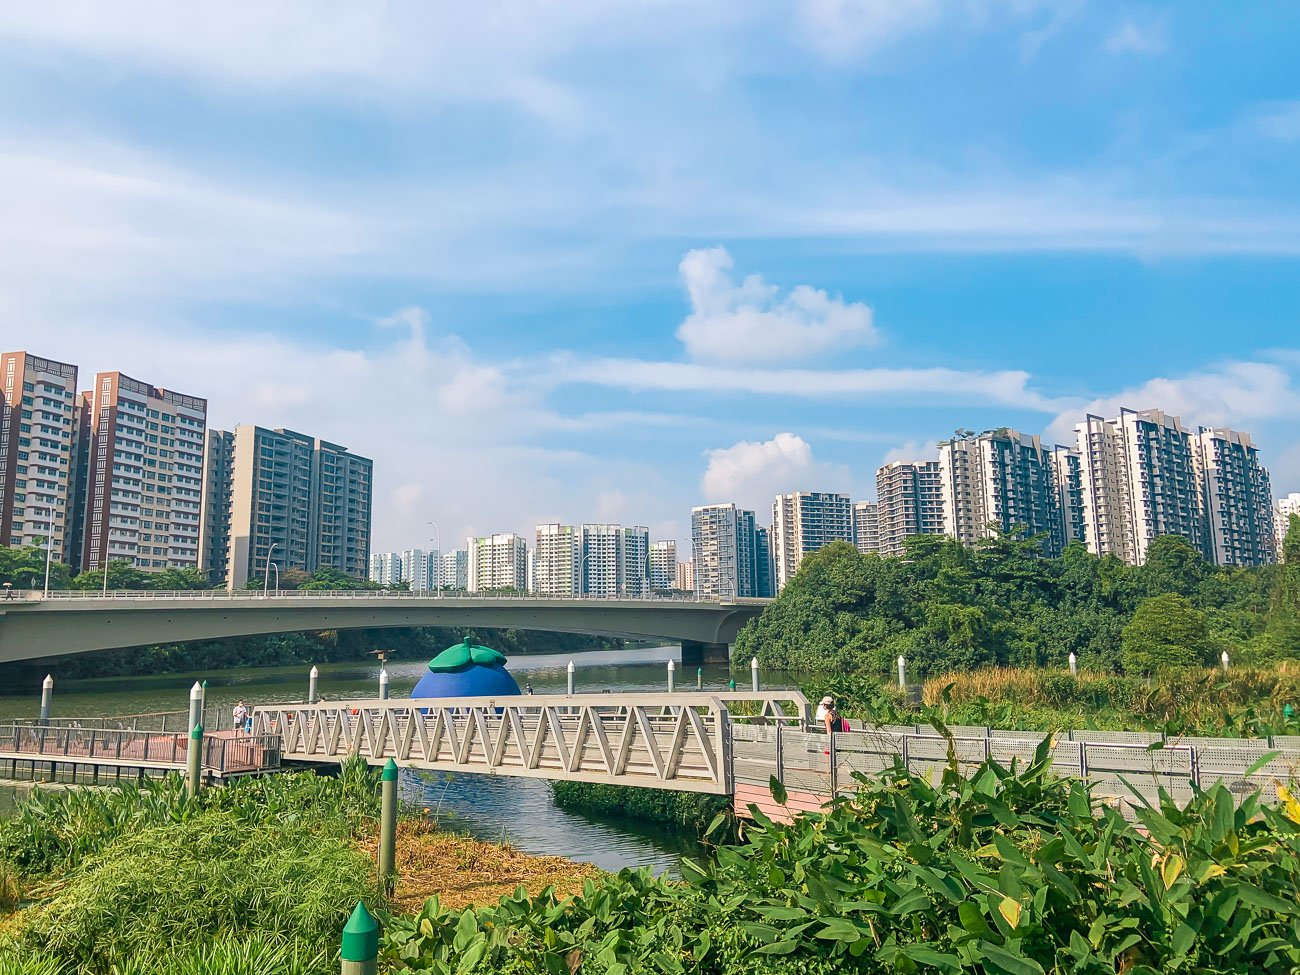 Coast-to-Coast Trail: Detailed hiking guide from Sengkang Riverside Park to Bishan-Ang Mo Kio Park